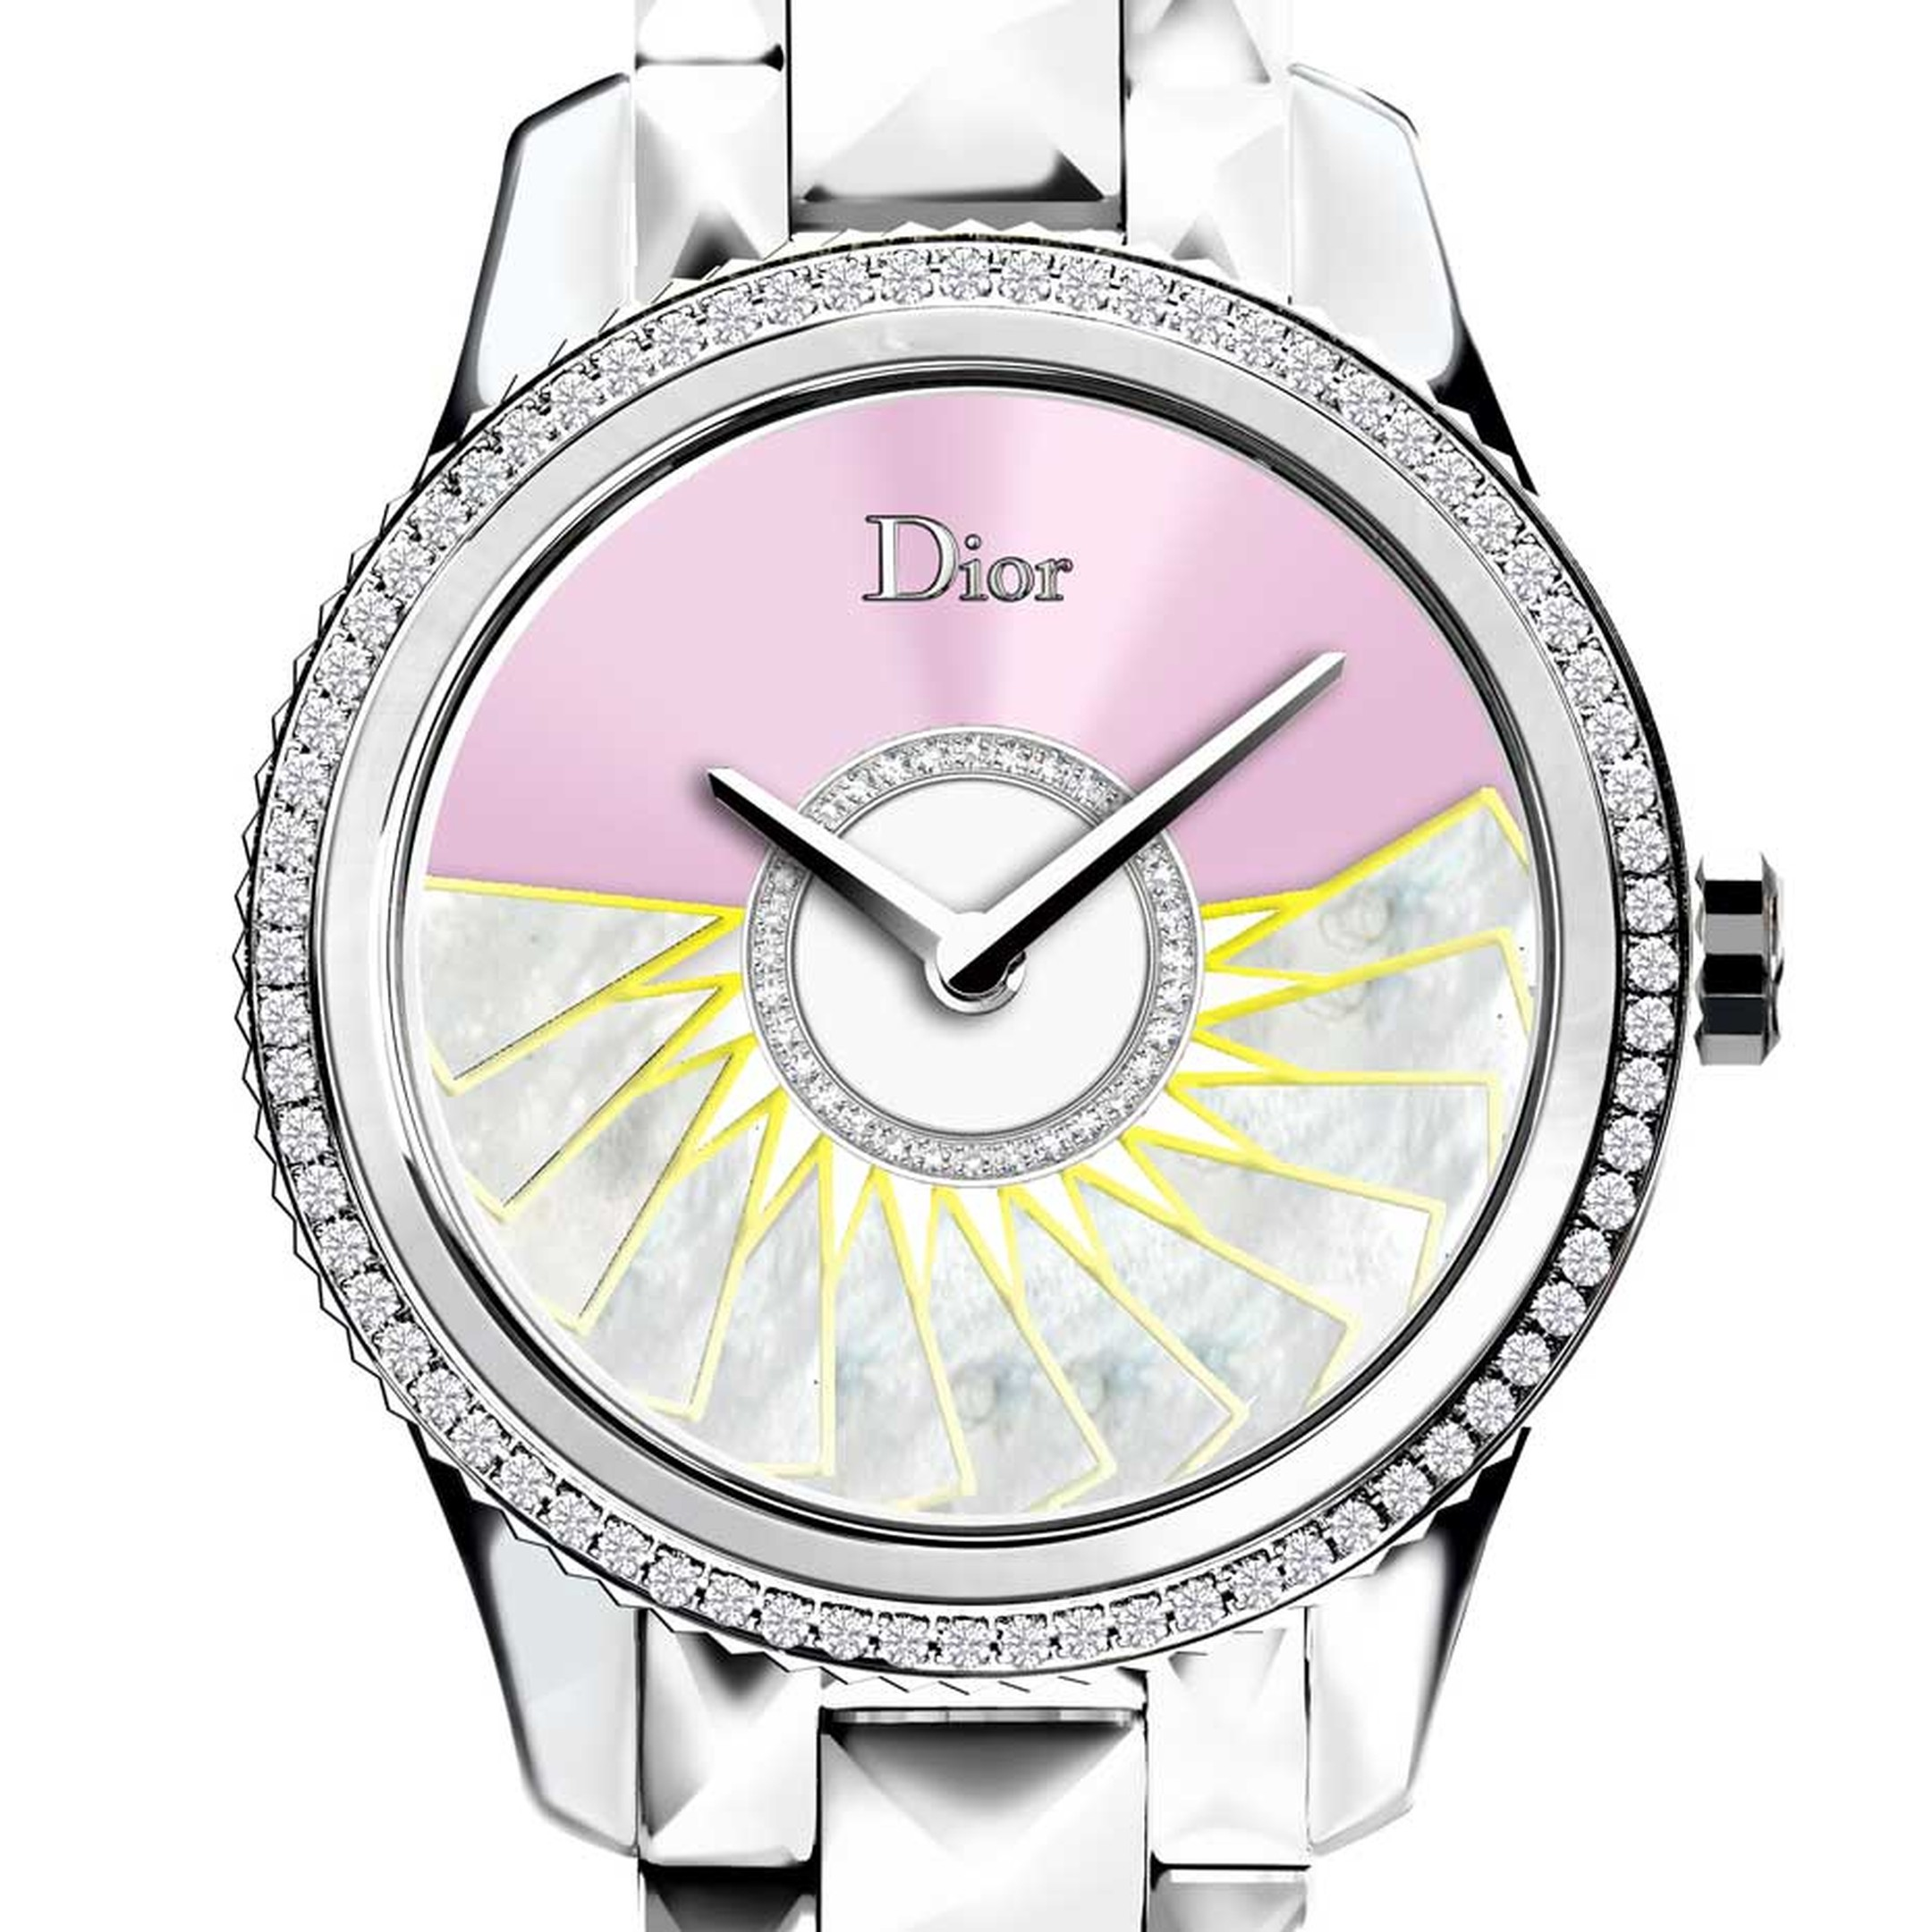 The oscillating weight on the pink Dior VIII Grand Bal Plissé Soleil watch is decorated with white mother-of-pearl marquetry, finished with yellow hems and set with diamonds.